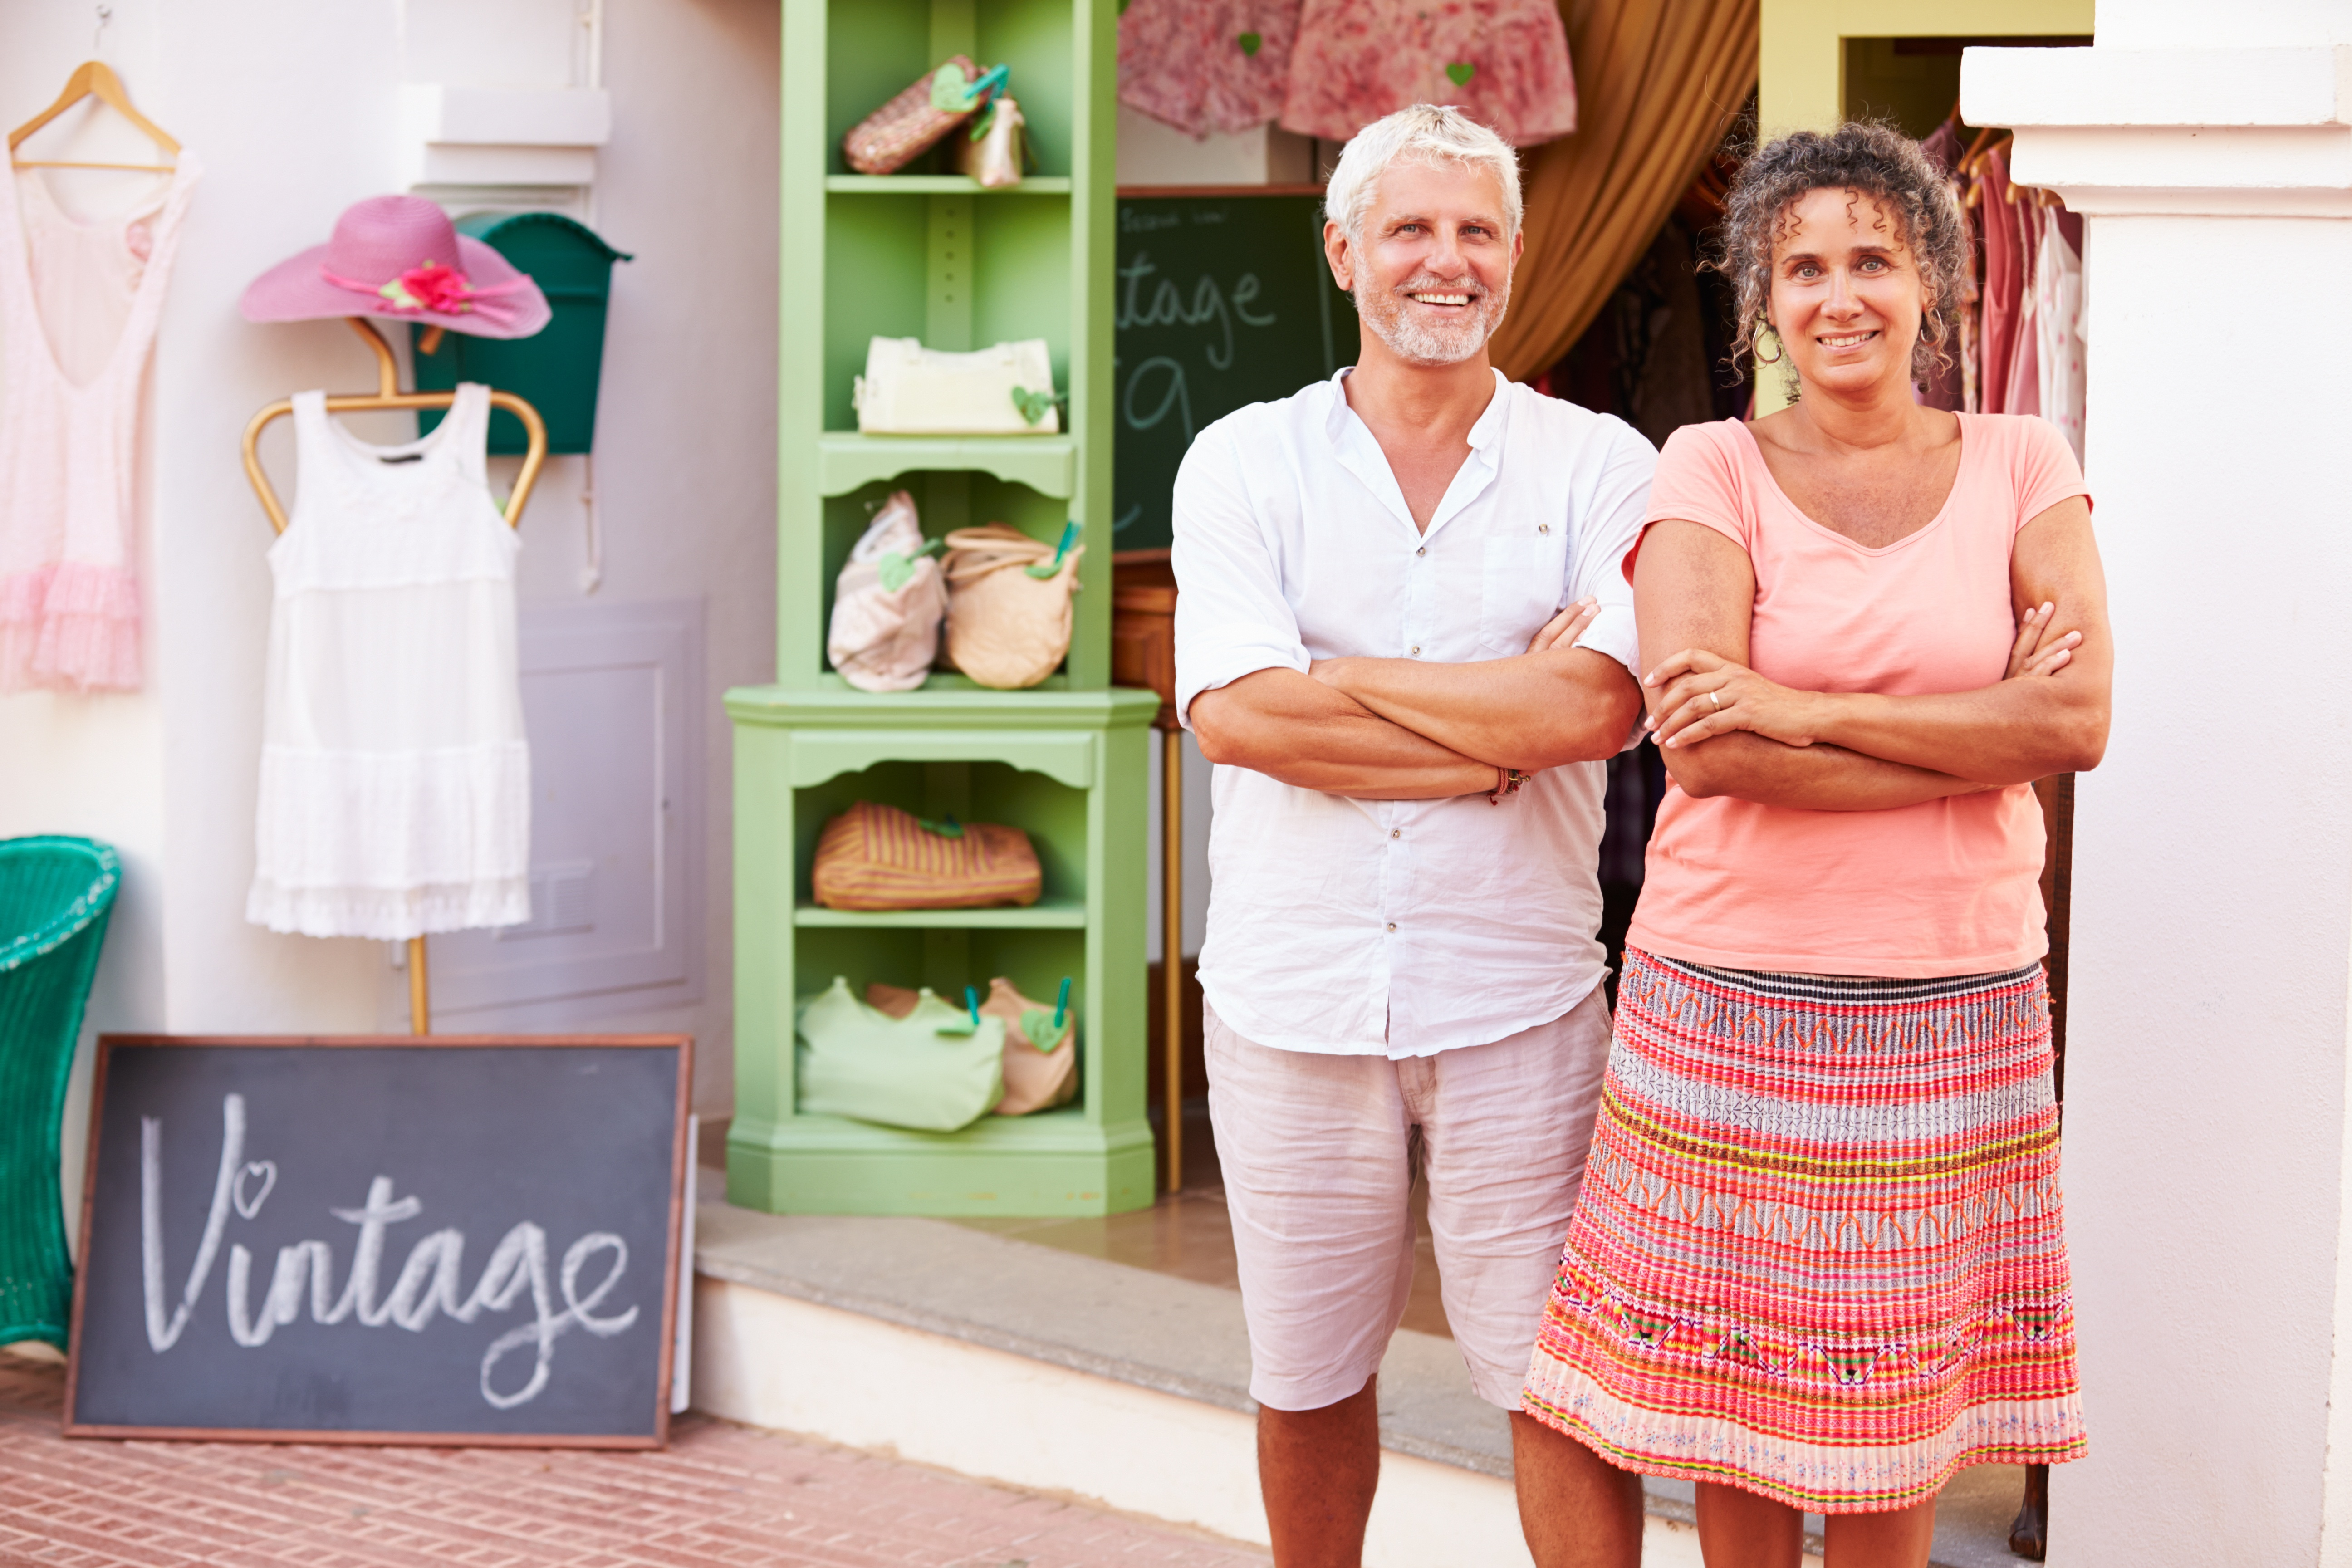 Small Business, Big Impact - Act Local!